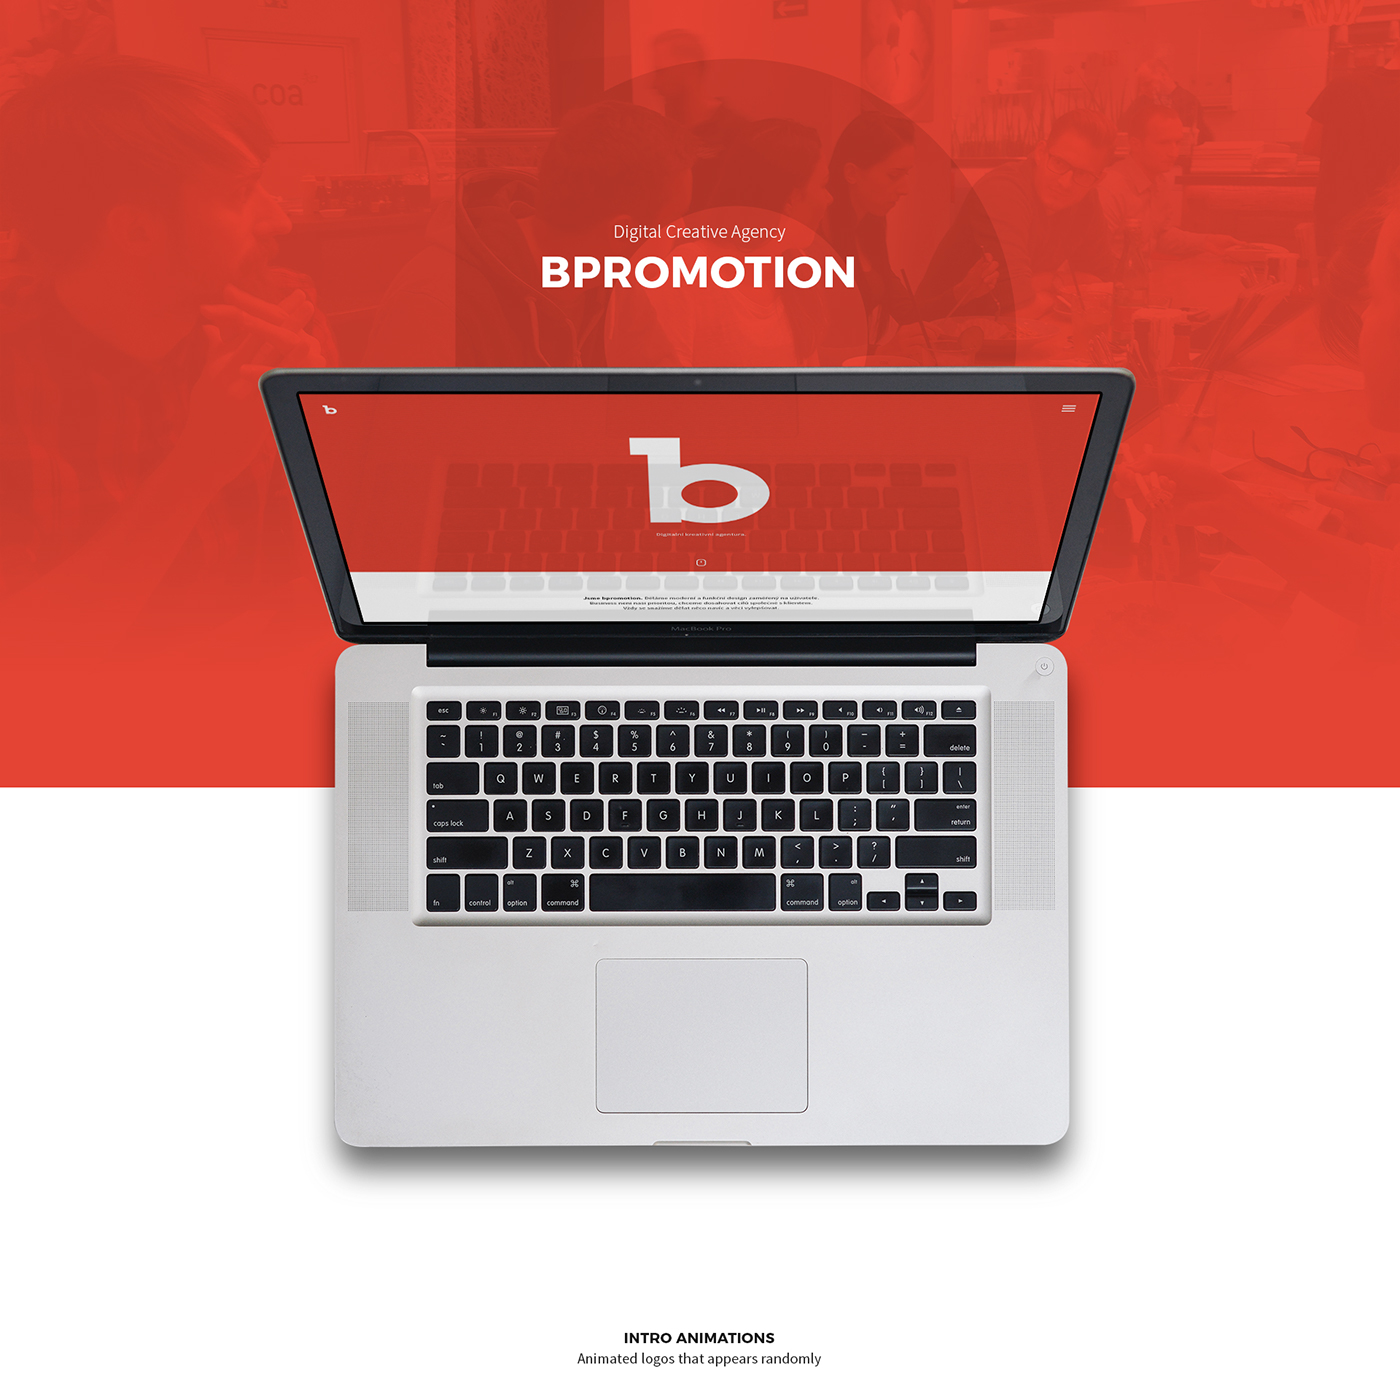 bpromotion digital agency red animations cinemagraph Project prague Czech Republic